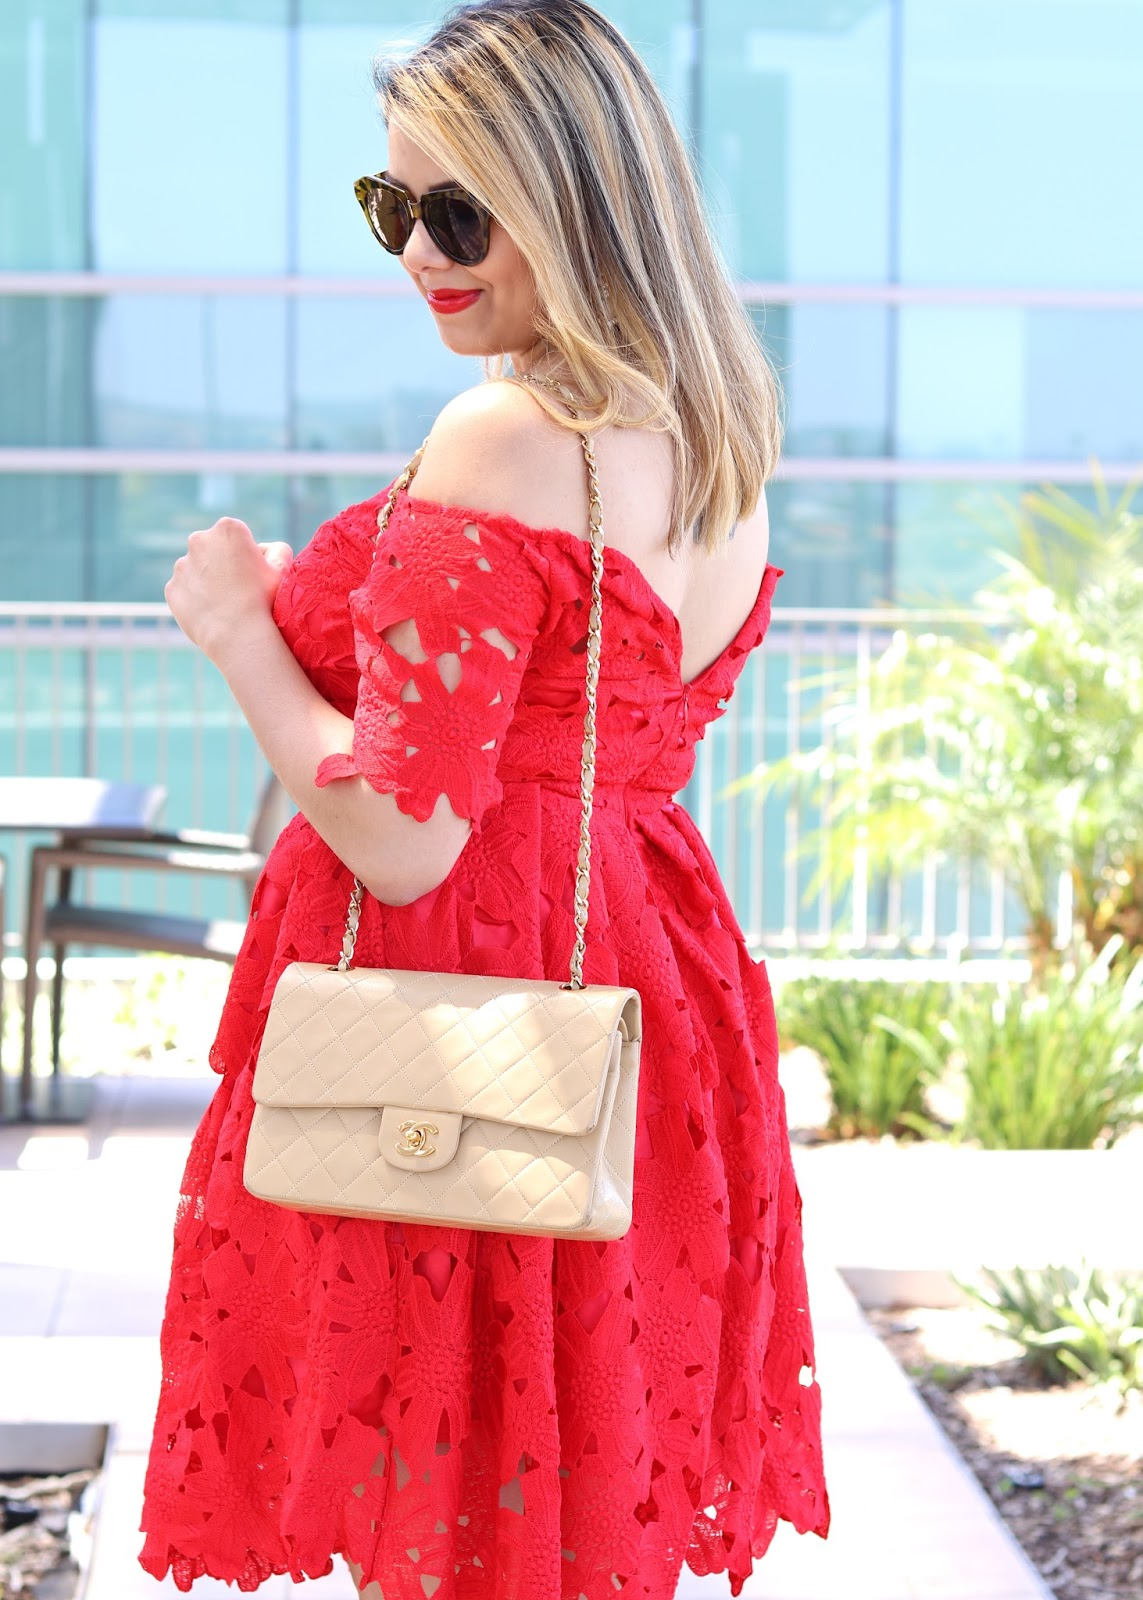 how to look elegant, classic chanel flap bag, consigned chanel purse, off the shoulder dress, off the shoulder red dress, off the shoulder cocktail dress